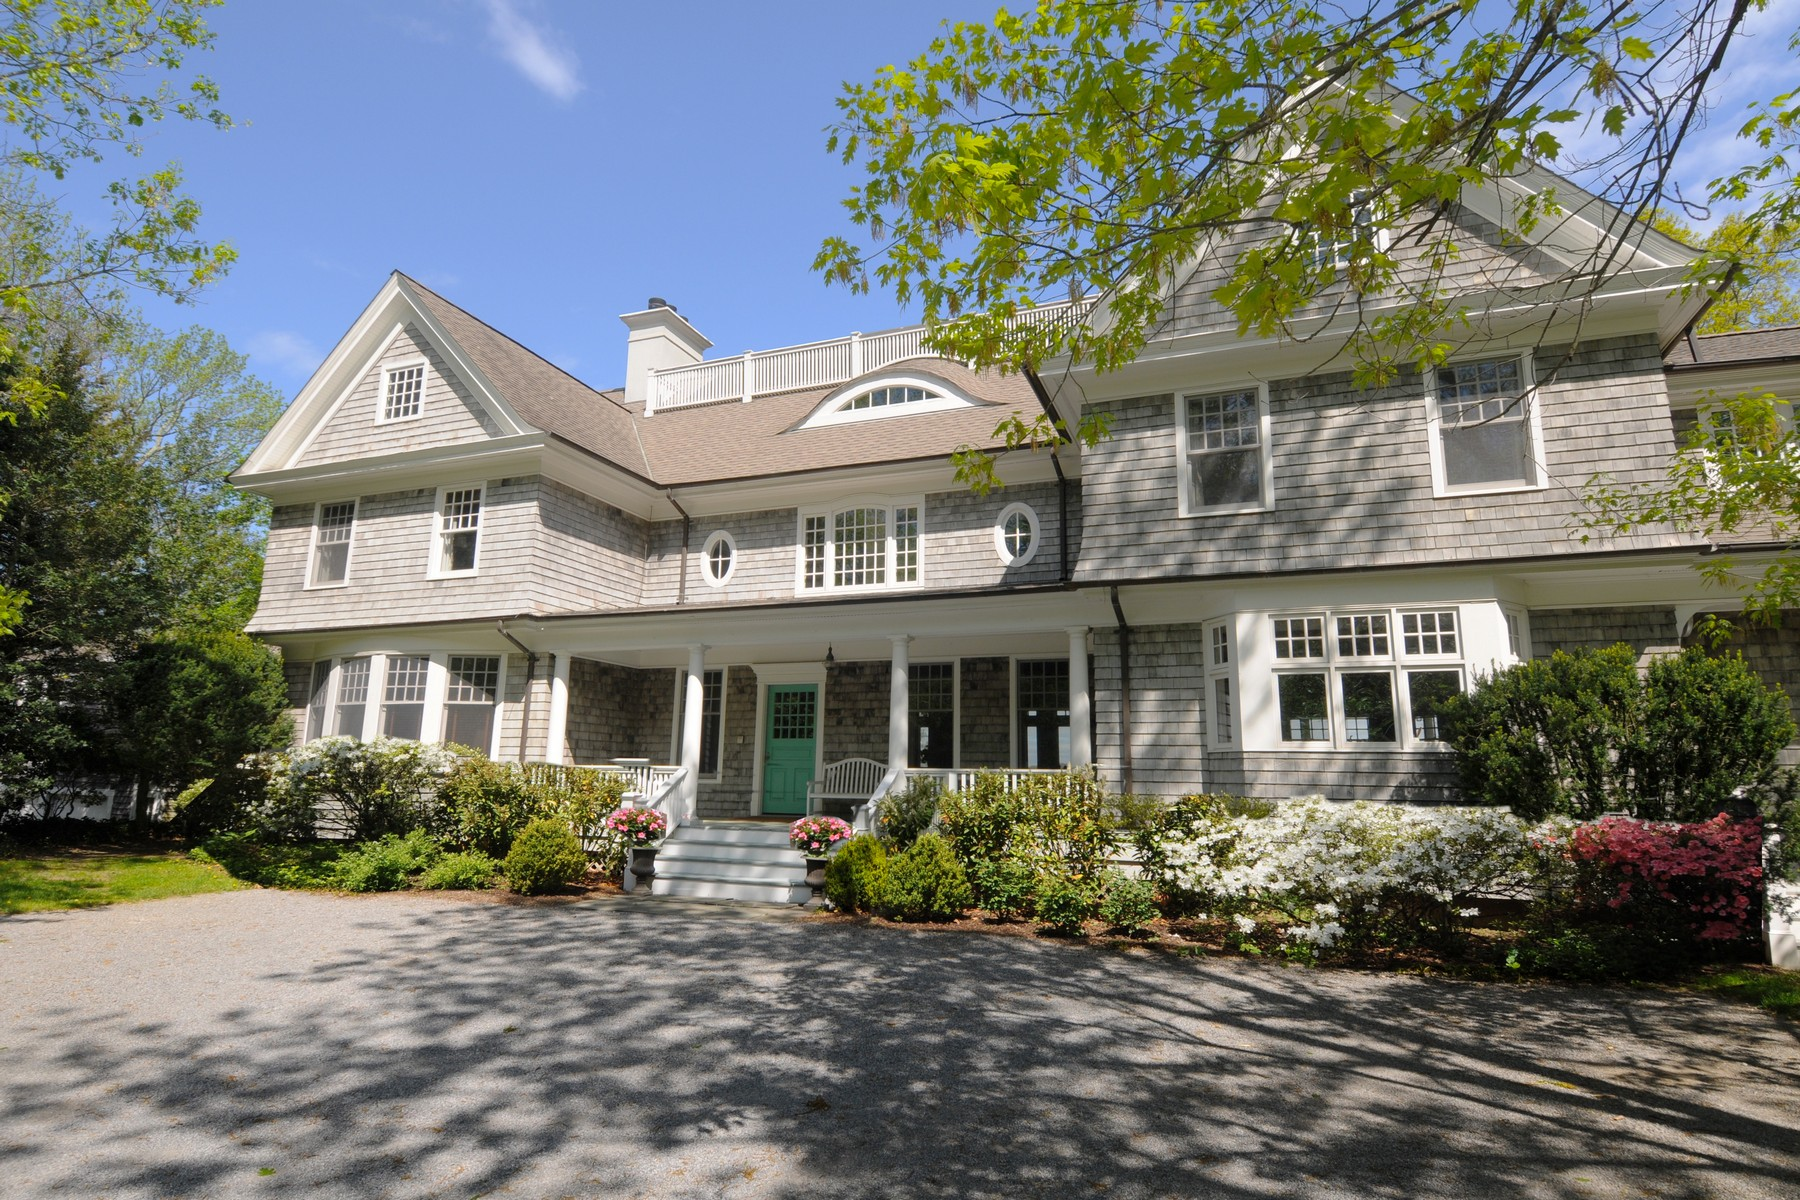 Single Family Home for Sale at Colonial 84 Cove Rd Rd Oyster Bay Cove, New York, 11771 United States